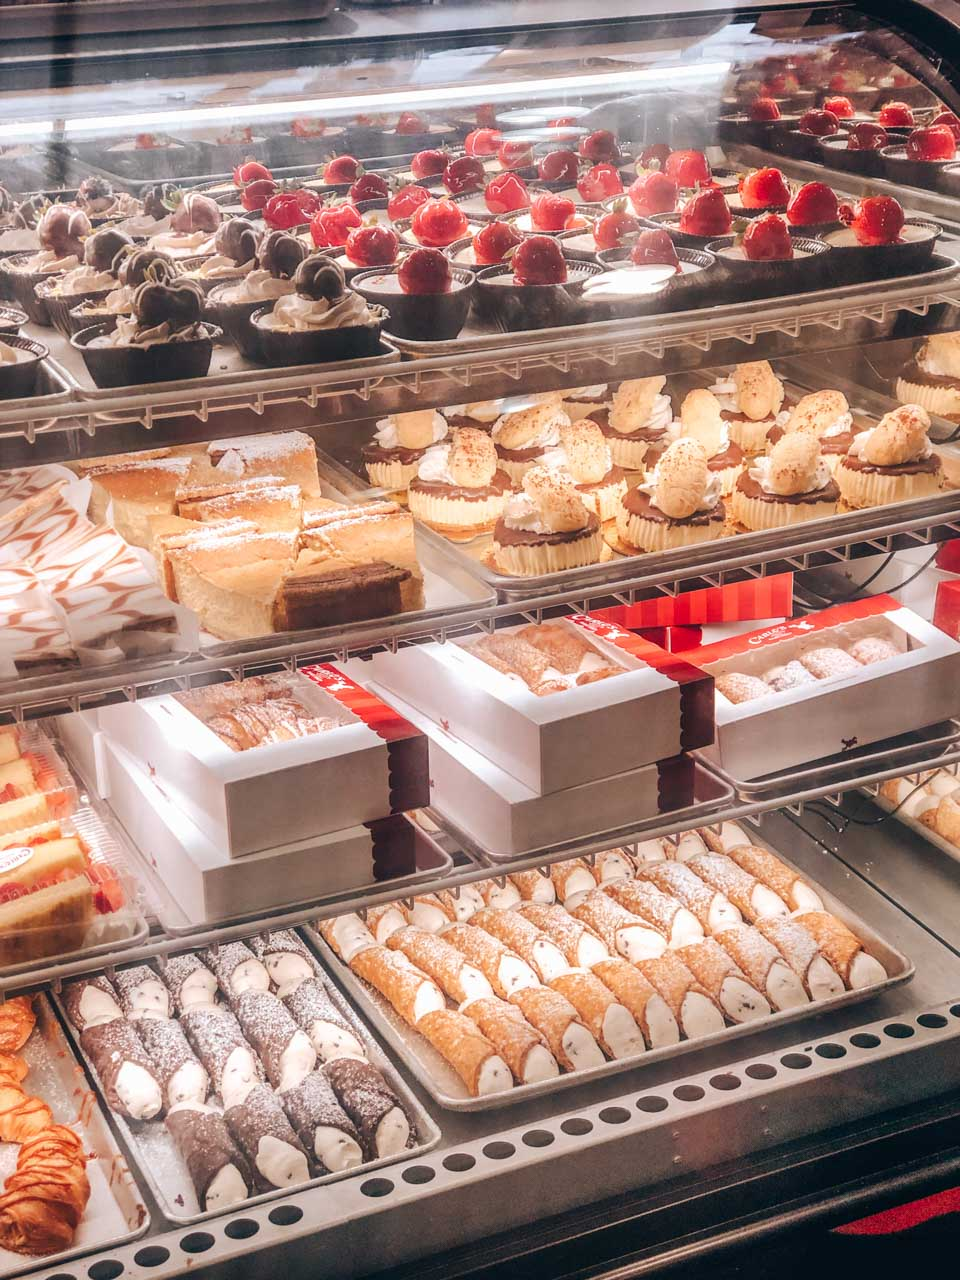 Various cupcakes, tartelettes and cannolis on display inside Carlo's Bake Shop in Hoboken, New Jersey